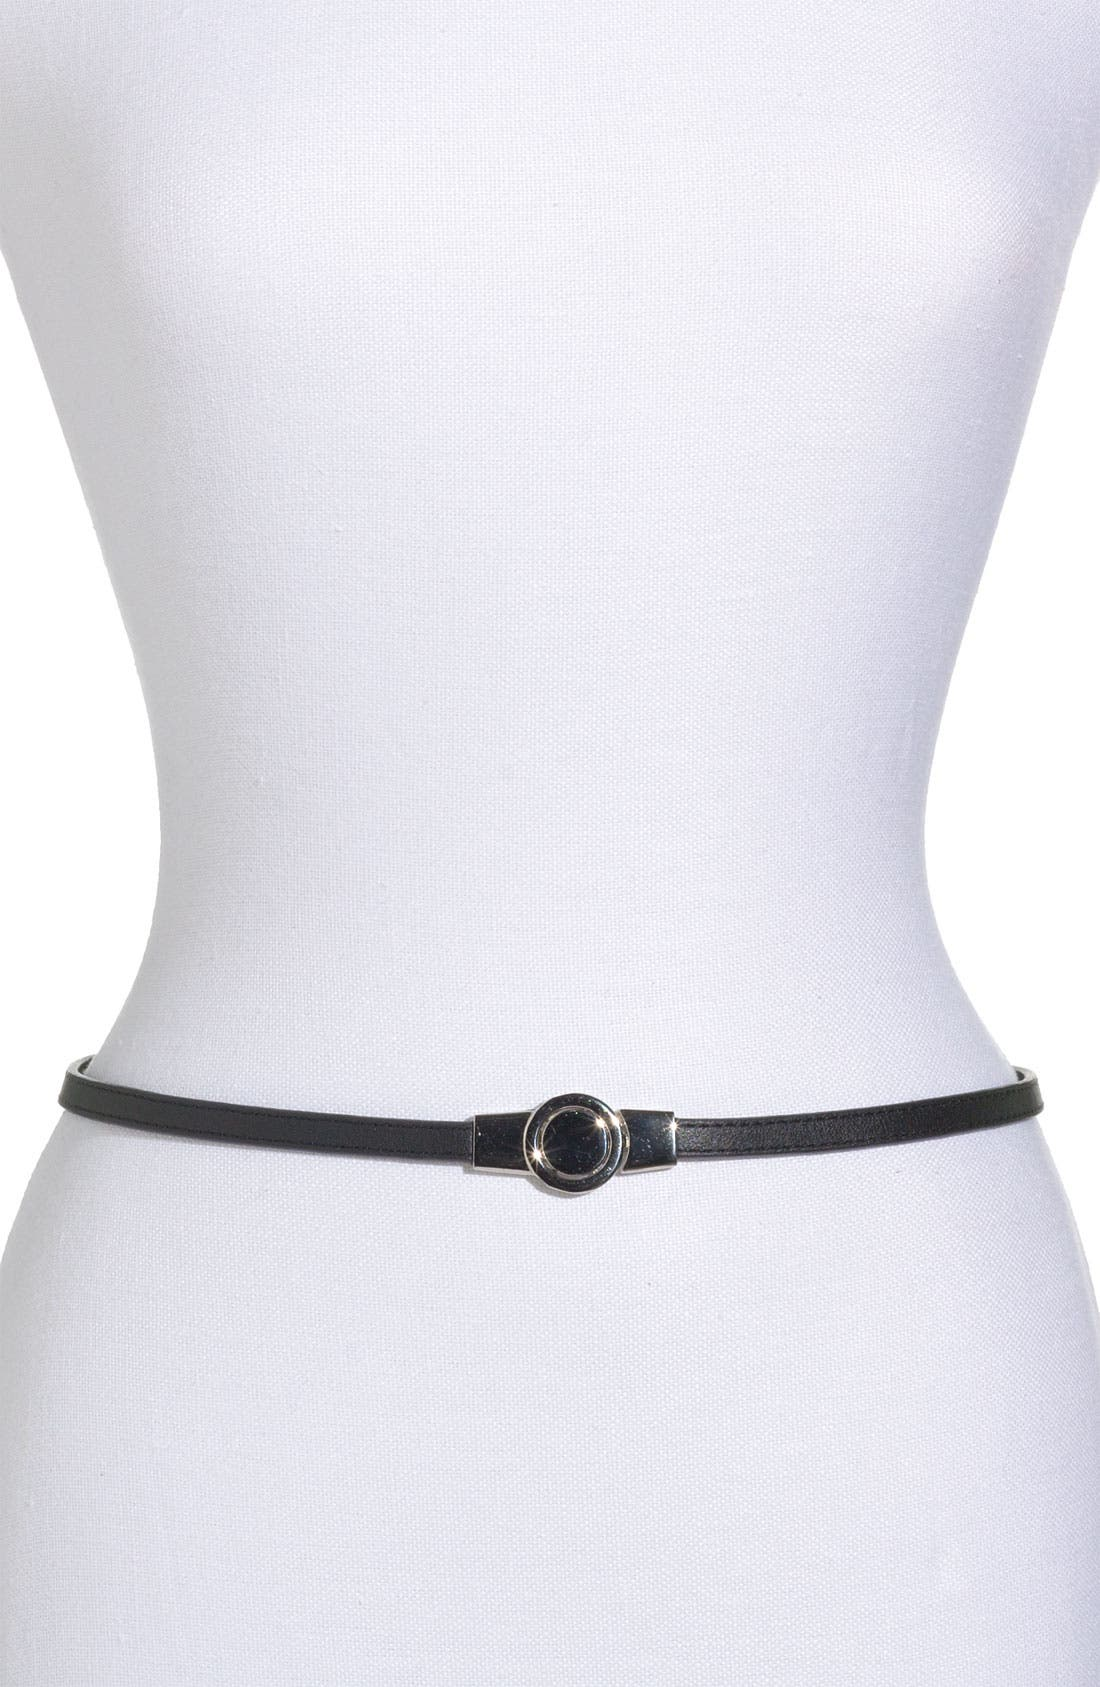 Alternate Image 1 Selected - Lafayette 148 New York Skinny Leather Belt